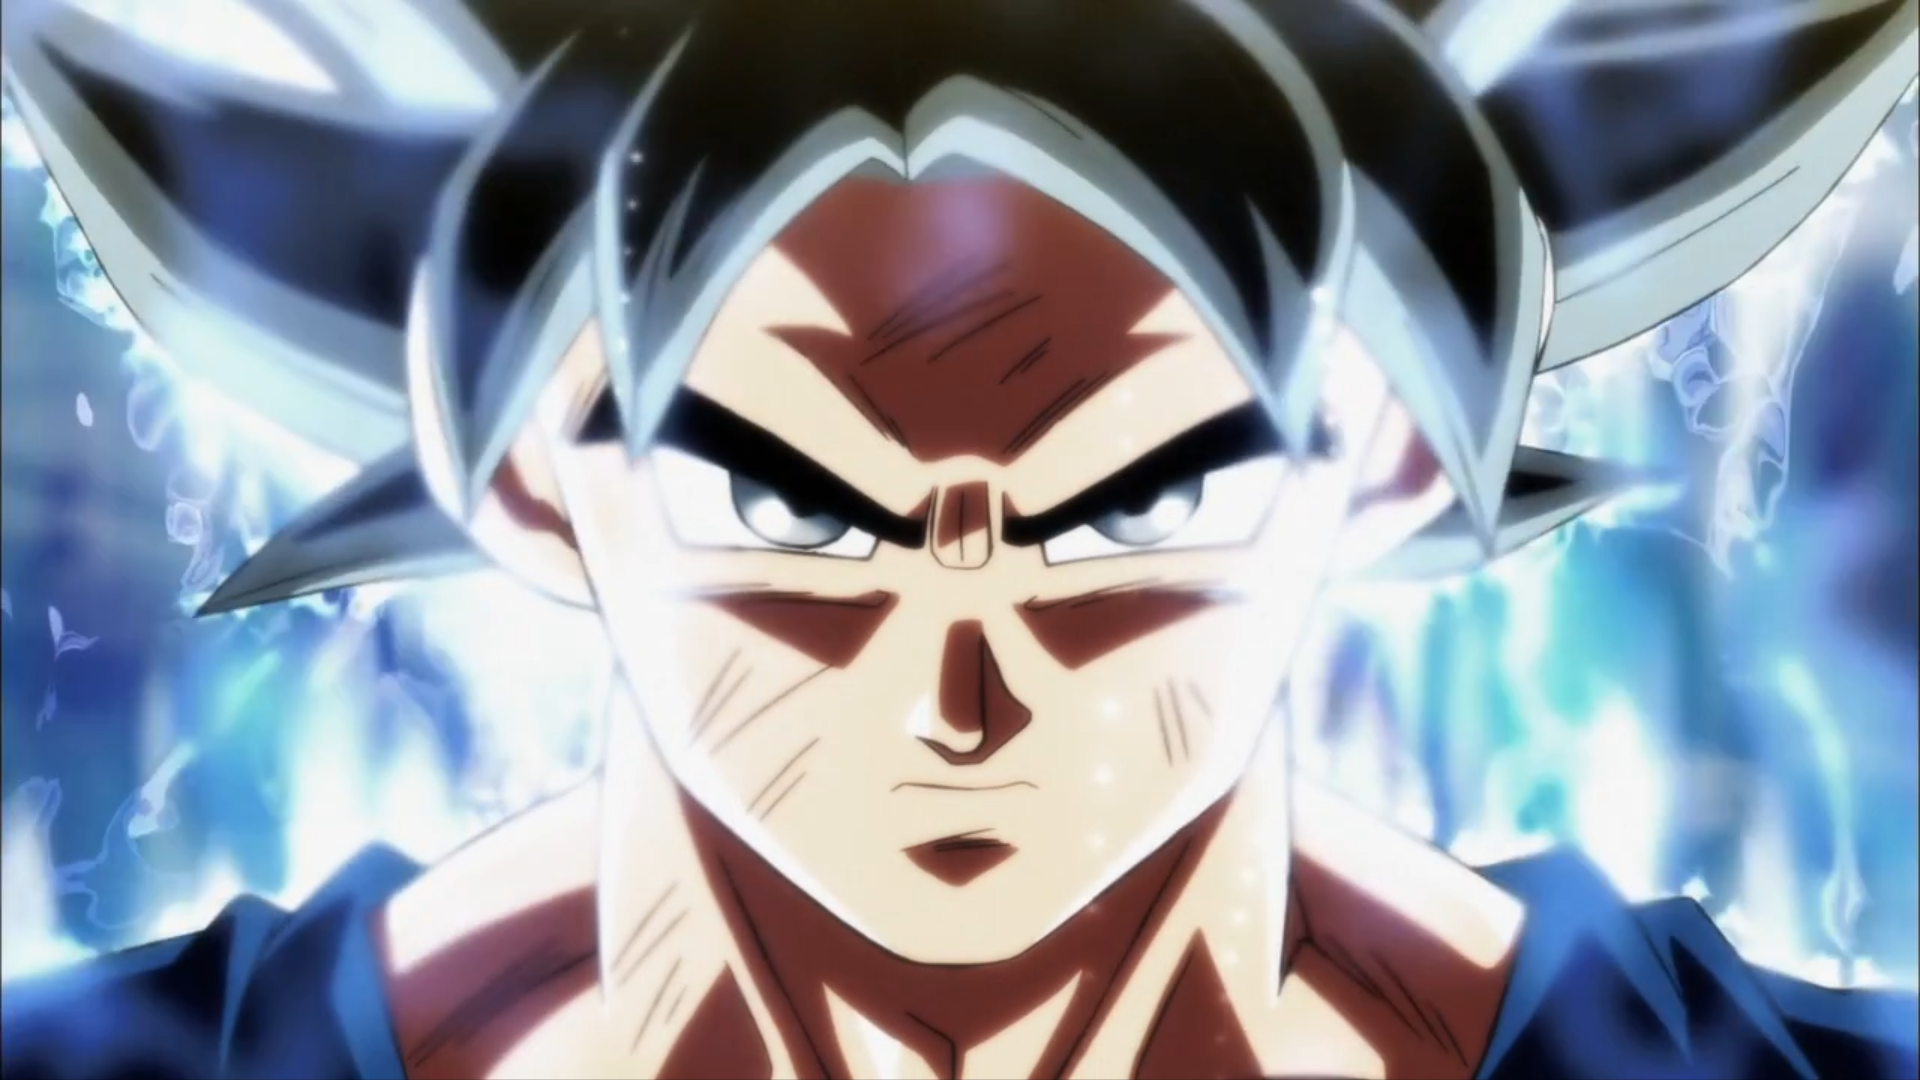 Goku Ultra Instinct Wallpaper Hd: Goku Ultra Instinct HD Wallpaper